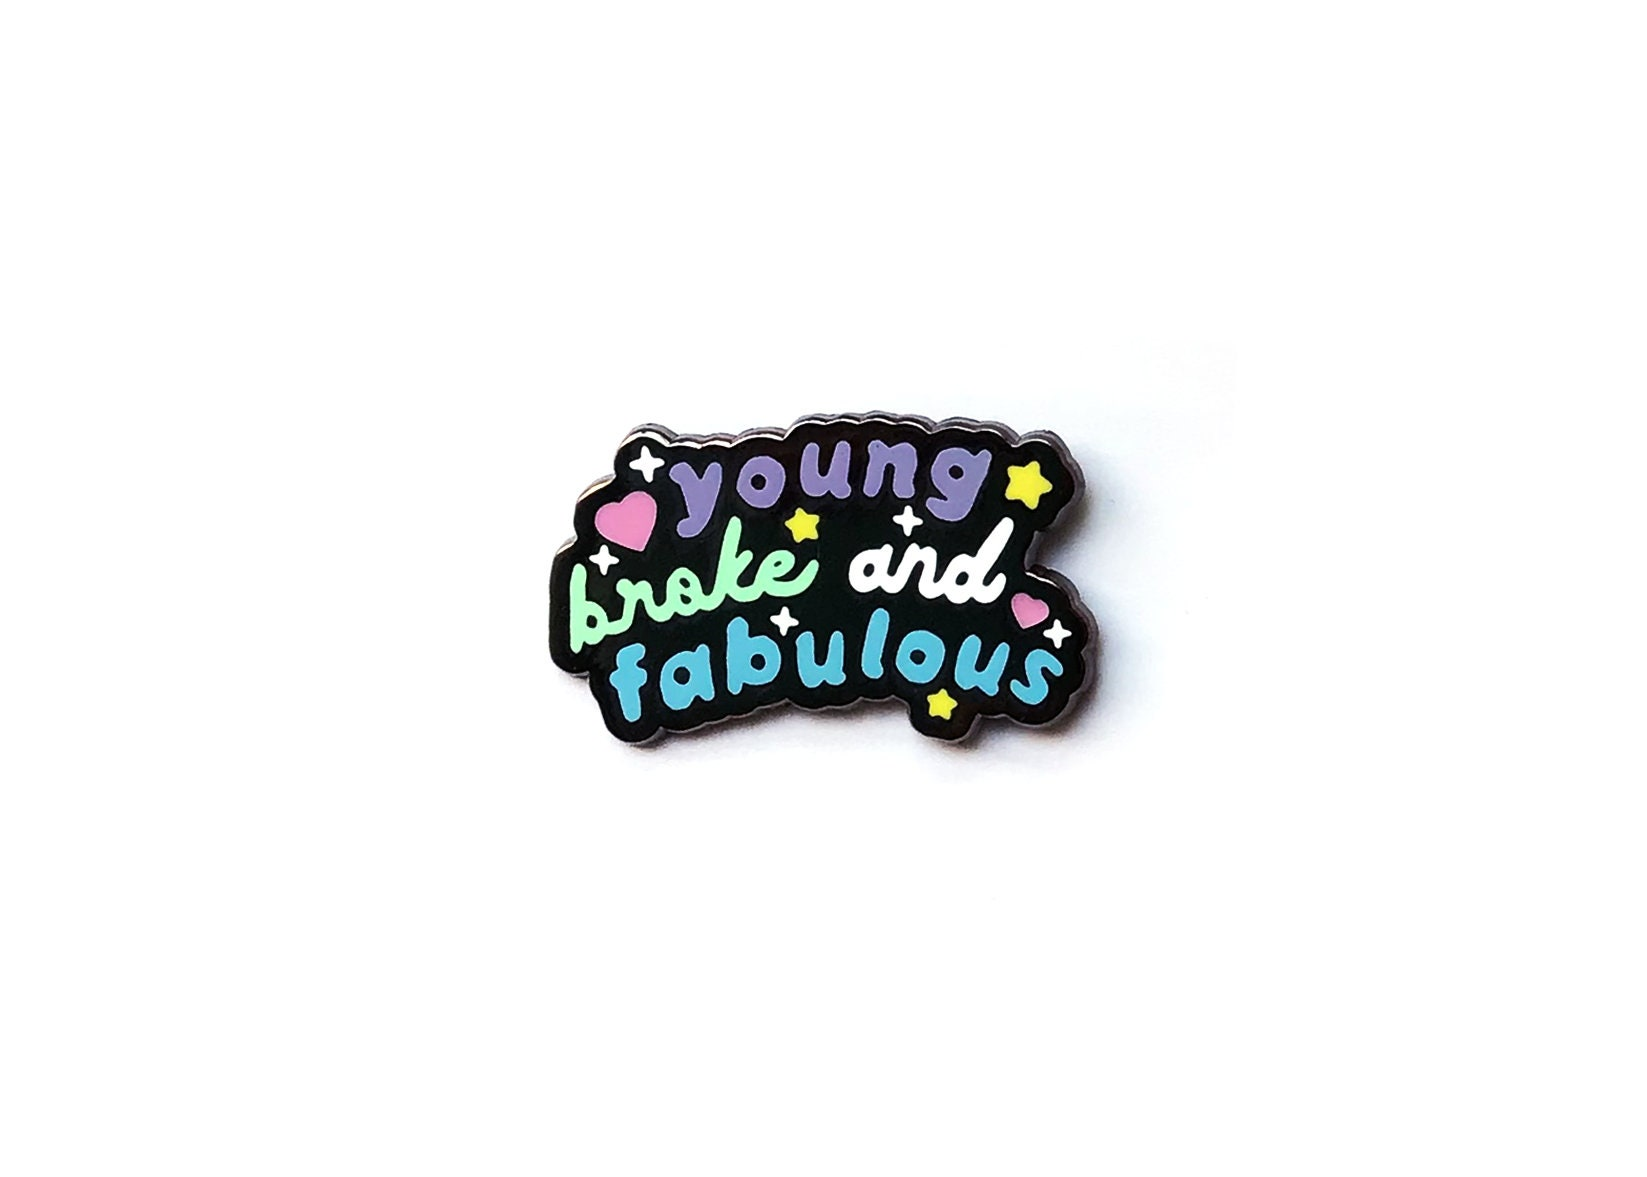 2f5d7b60d61 Enamel pin Planet young broke and fabulous Bunny Frog   Etsy